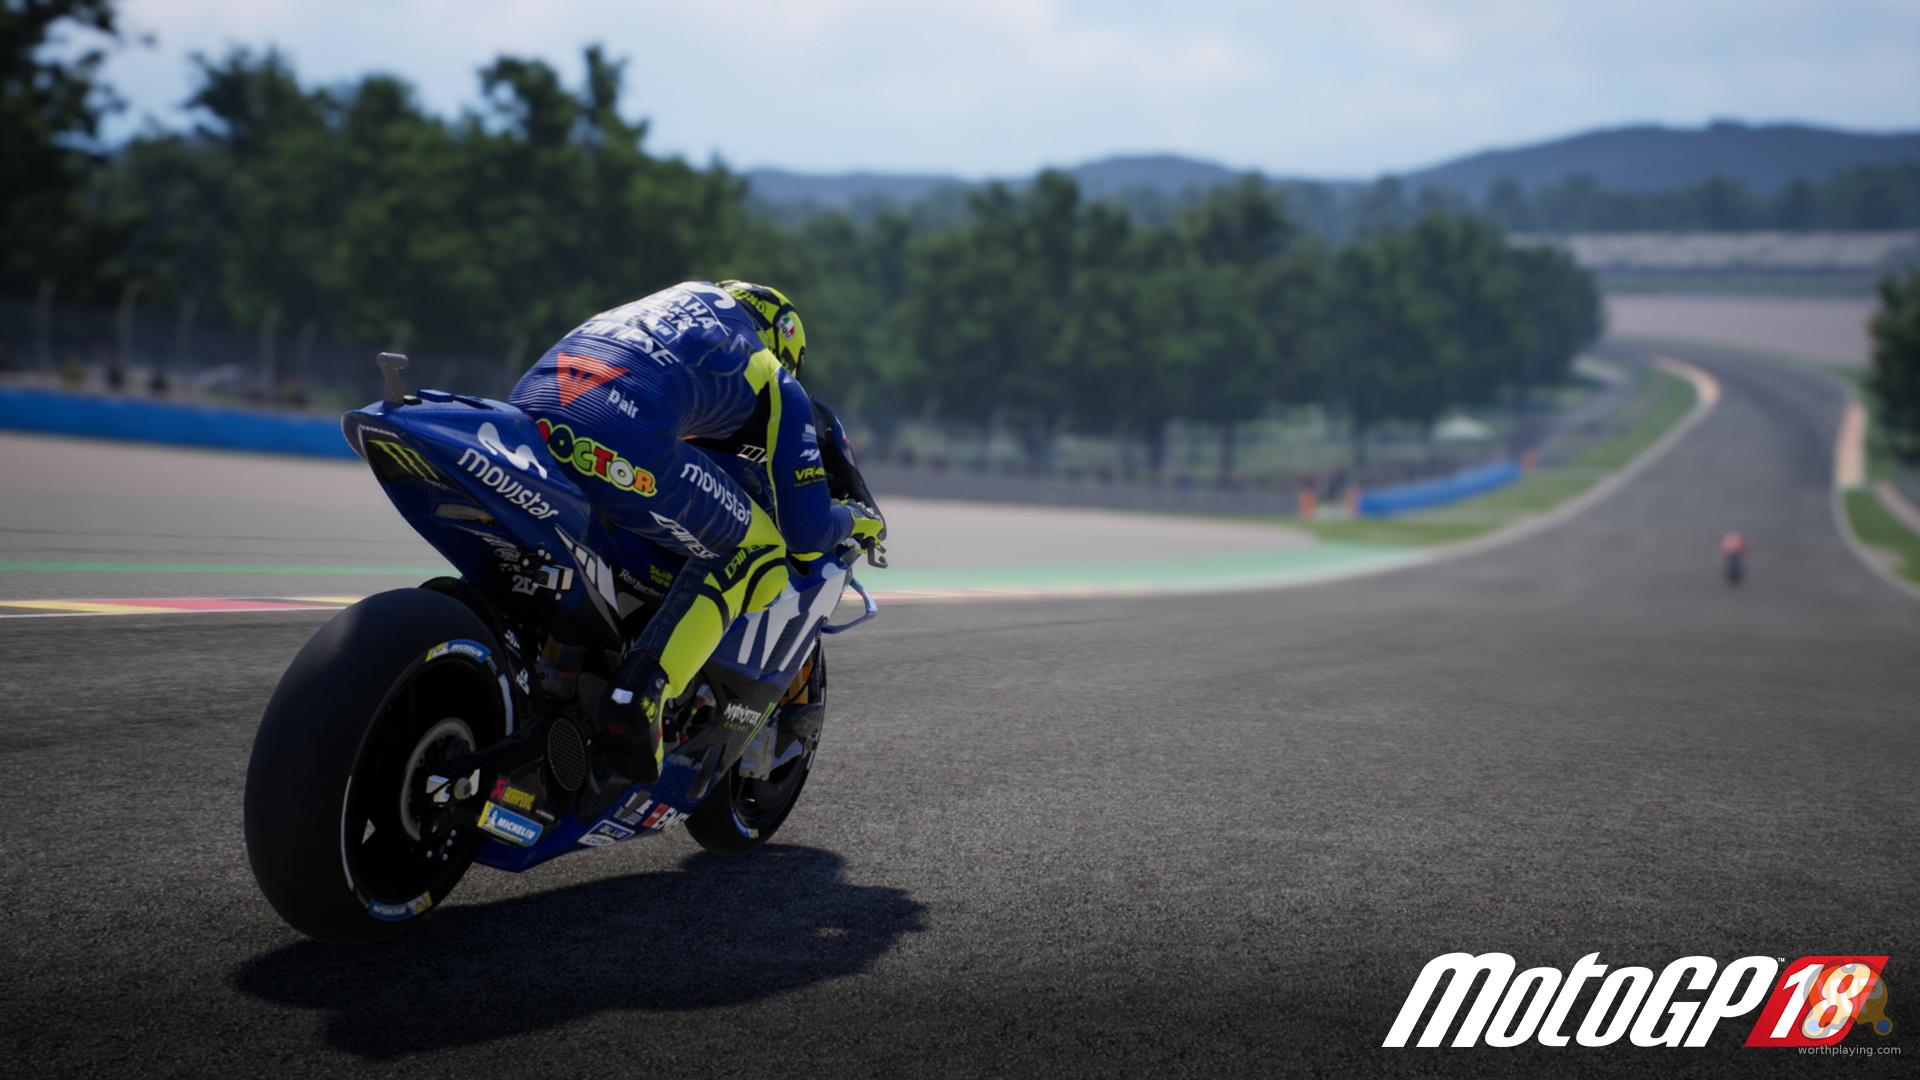 MotoGP 18 Has New Screenshots And Features Trailer To Show Off